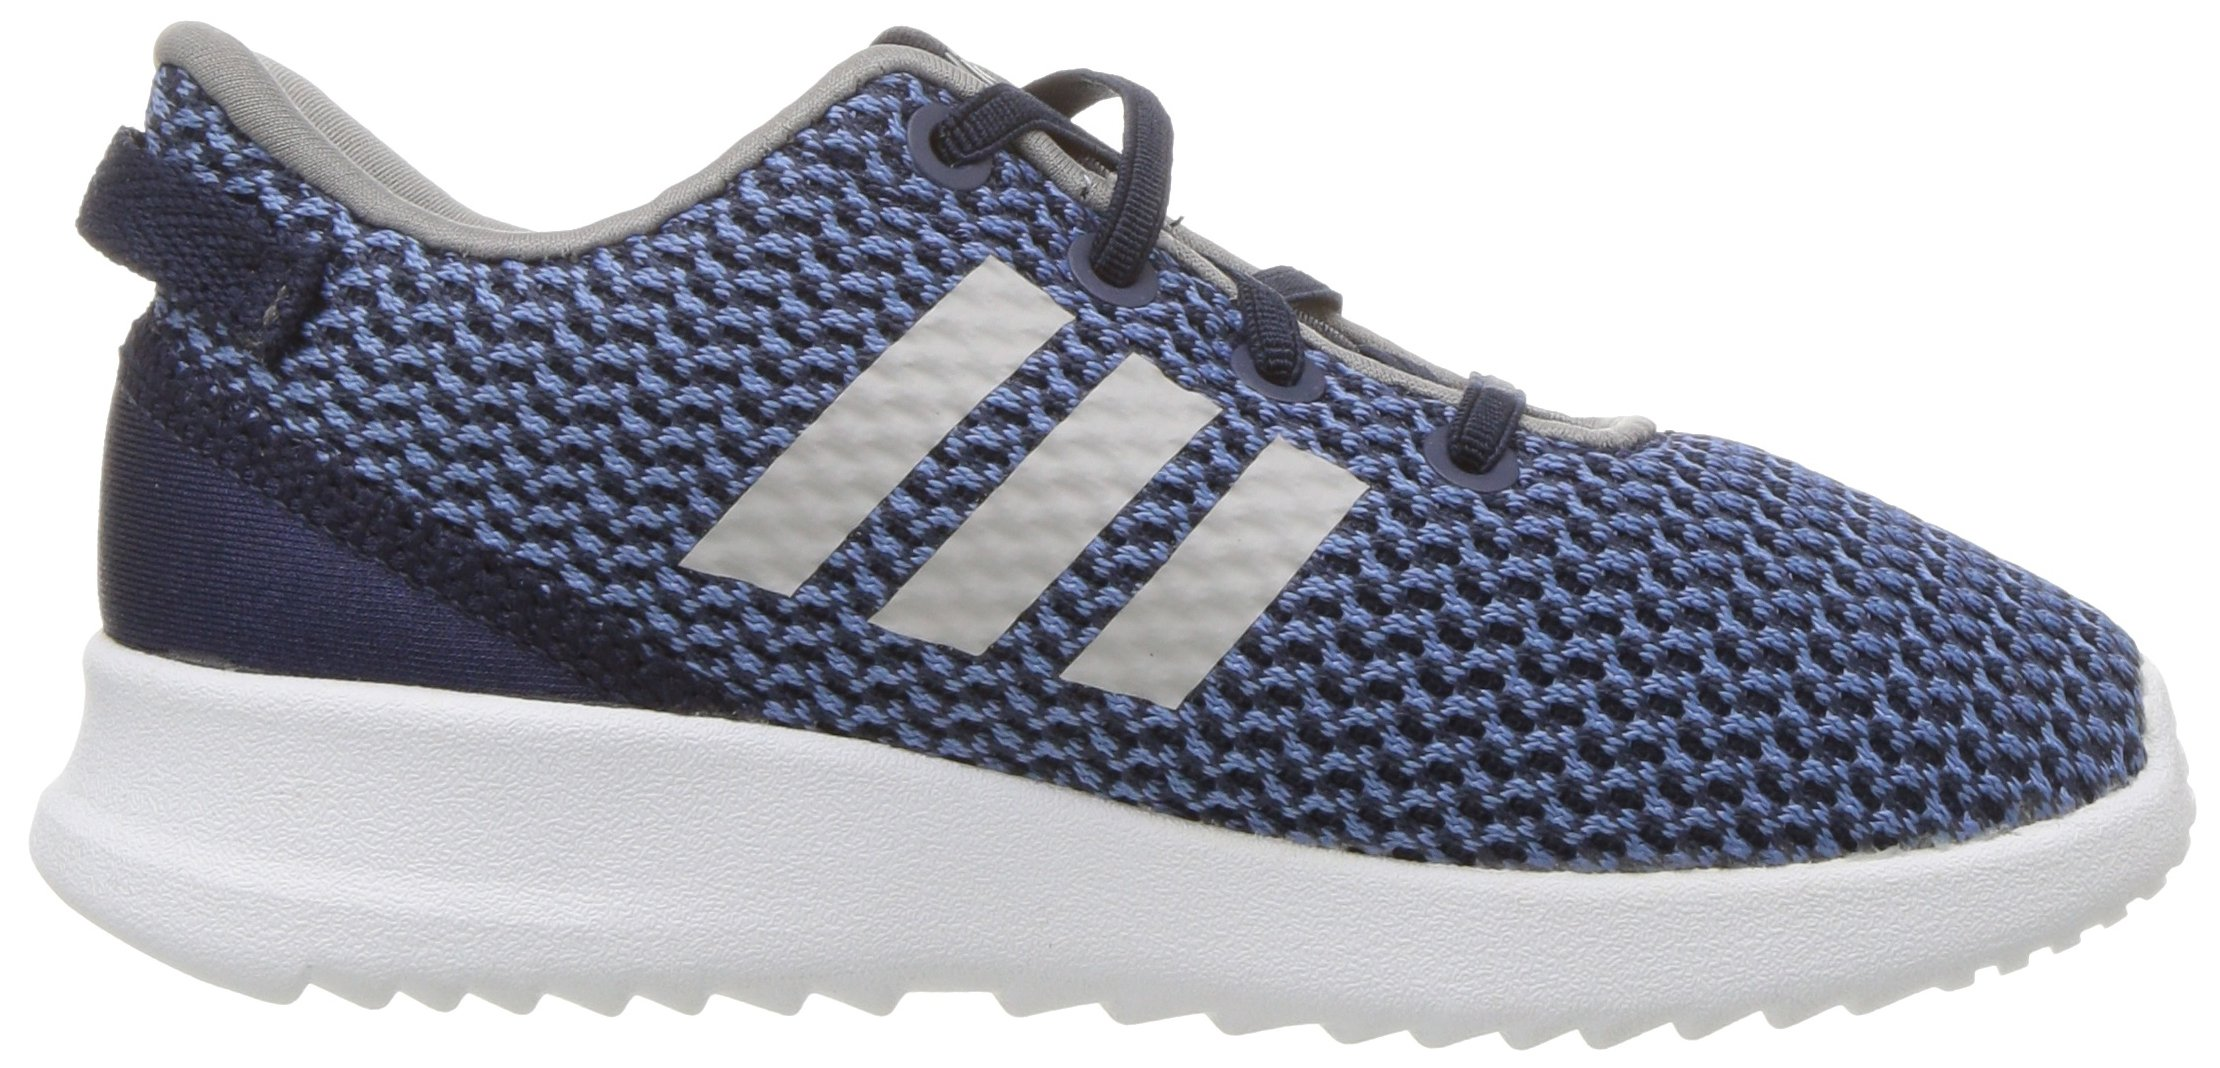 adidas Kids CF Racer TR Running Shoe, Collegiate Navy/Collegiate Navy/Grey, 5K M US Toddler by adidas (Image #7)